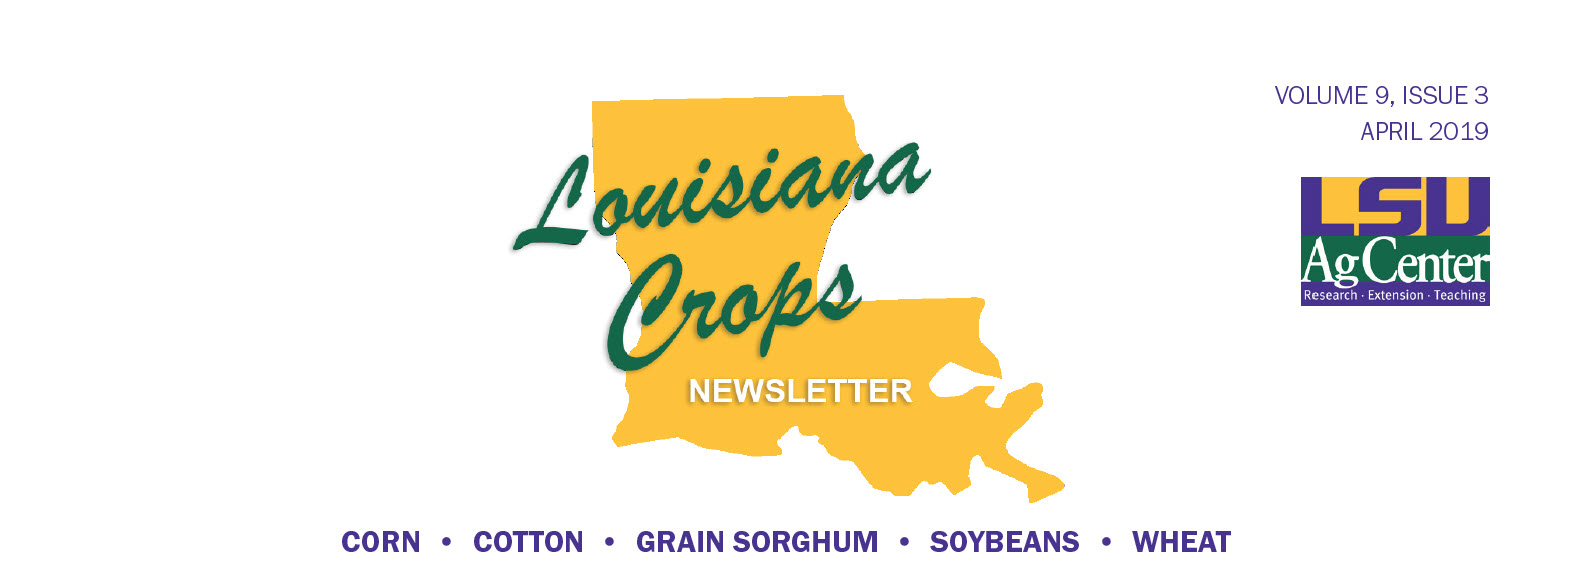 Louisiana crops newsletter banner, Volume 9, Issue 3, April 2019, corn, cotton, grain sorghum, soybeans, wheat